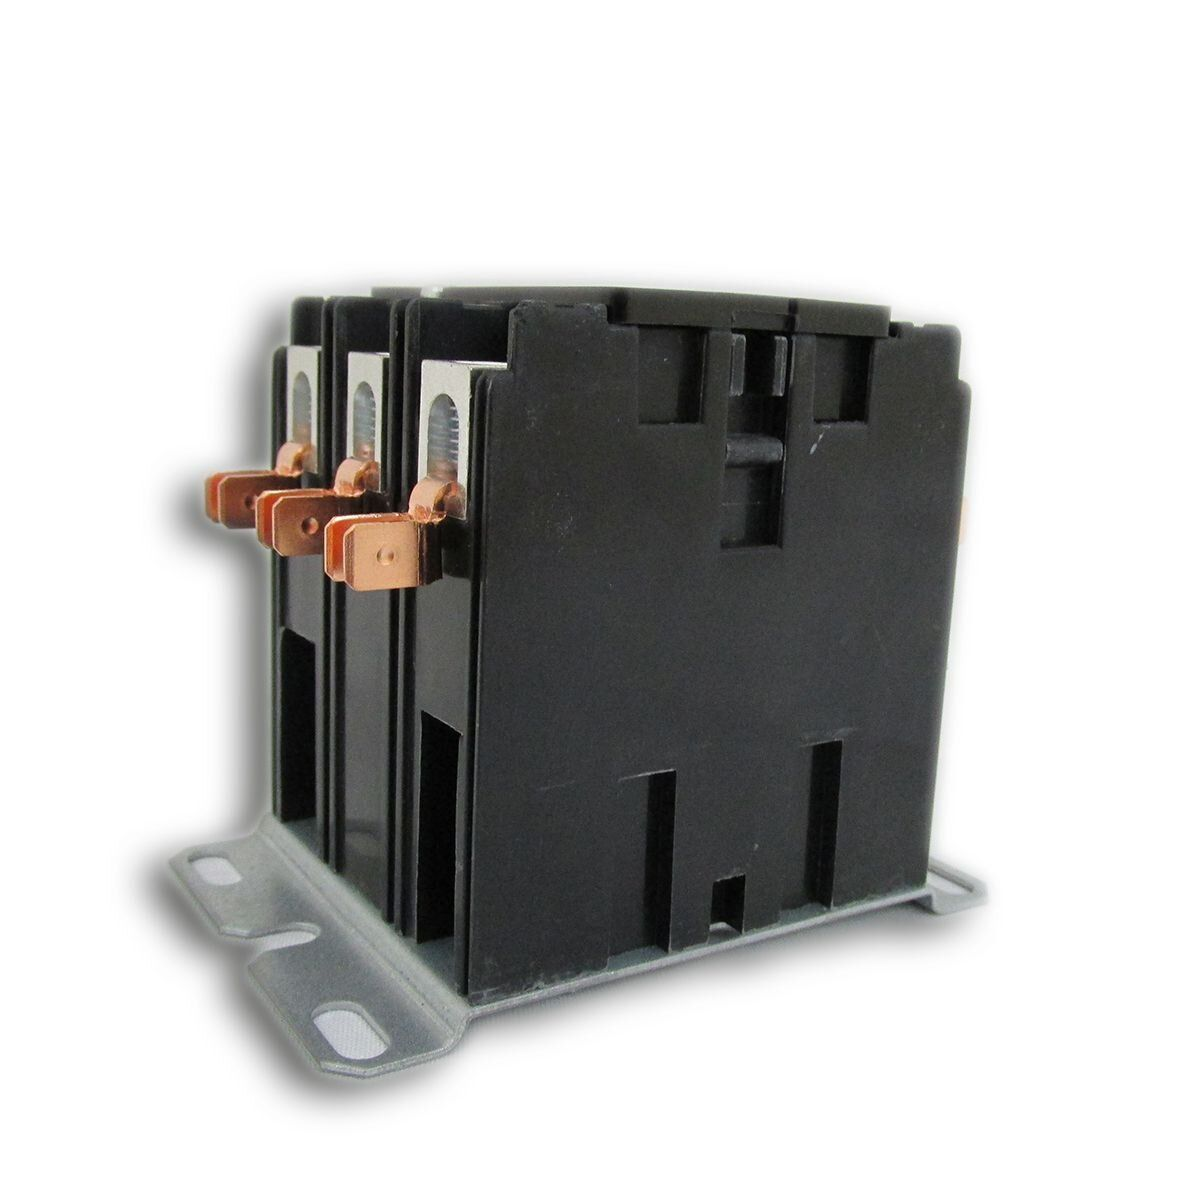 Totaline P282 0433a Contactor 3 Pole 40 Amp Lug Terminals Tube 208 240 Vac In 2020 With Images Vac Pole Water Pump Motor